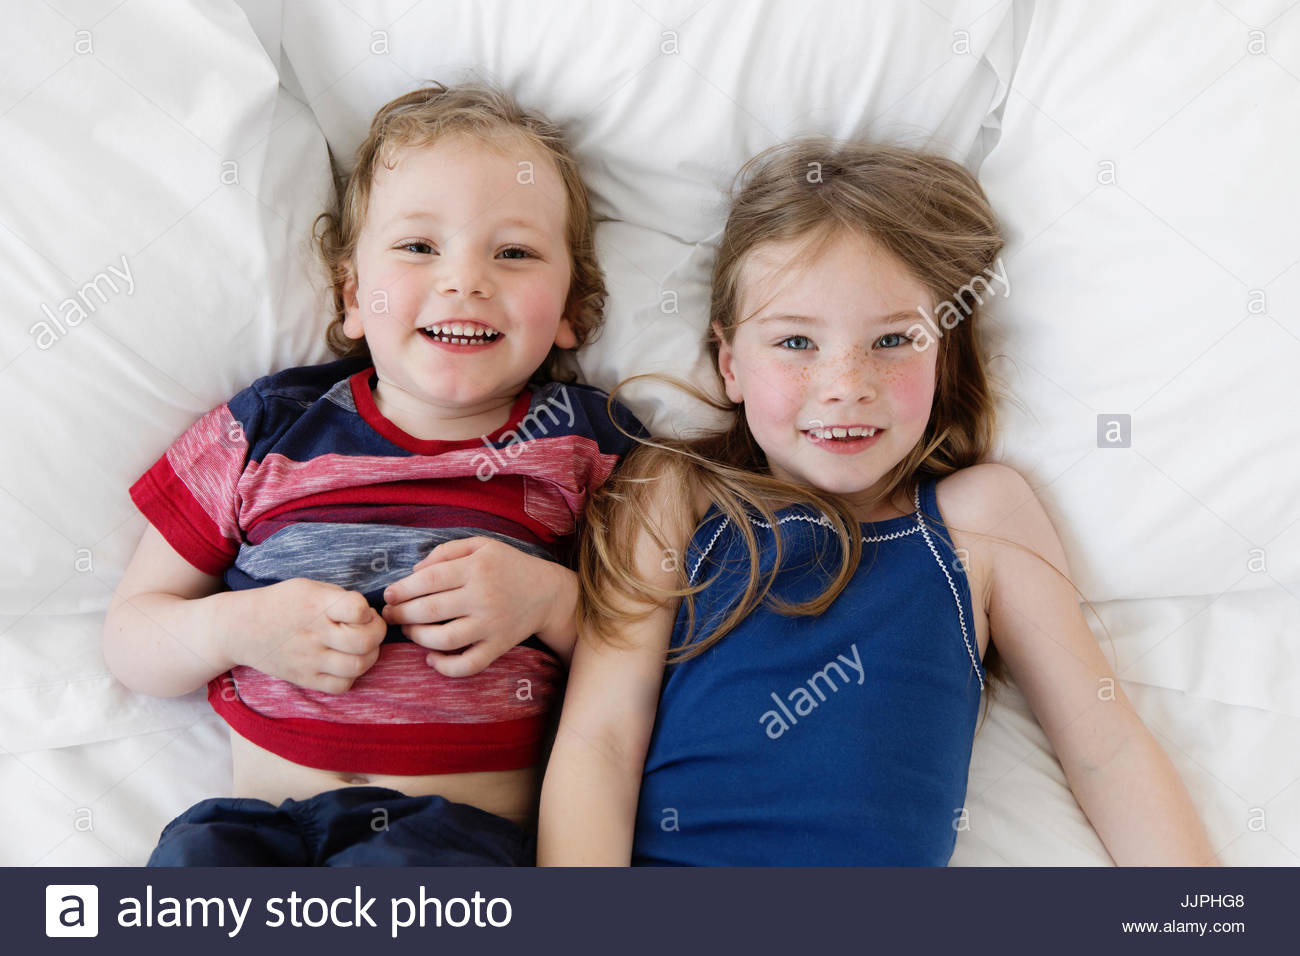 A six year old girl and four year old boy, brother and sister lying on a bed looking up at the camera. - Stock Image